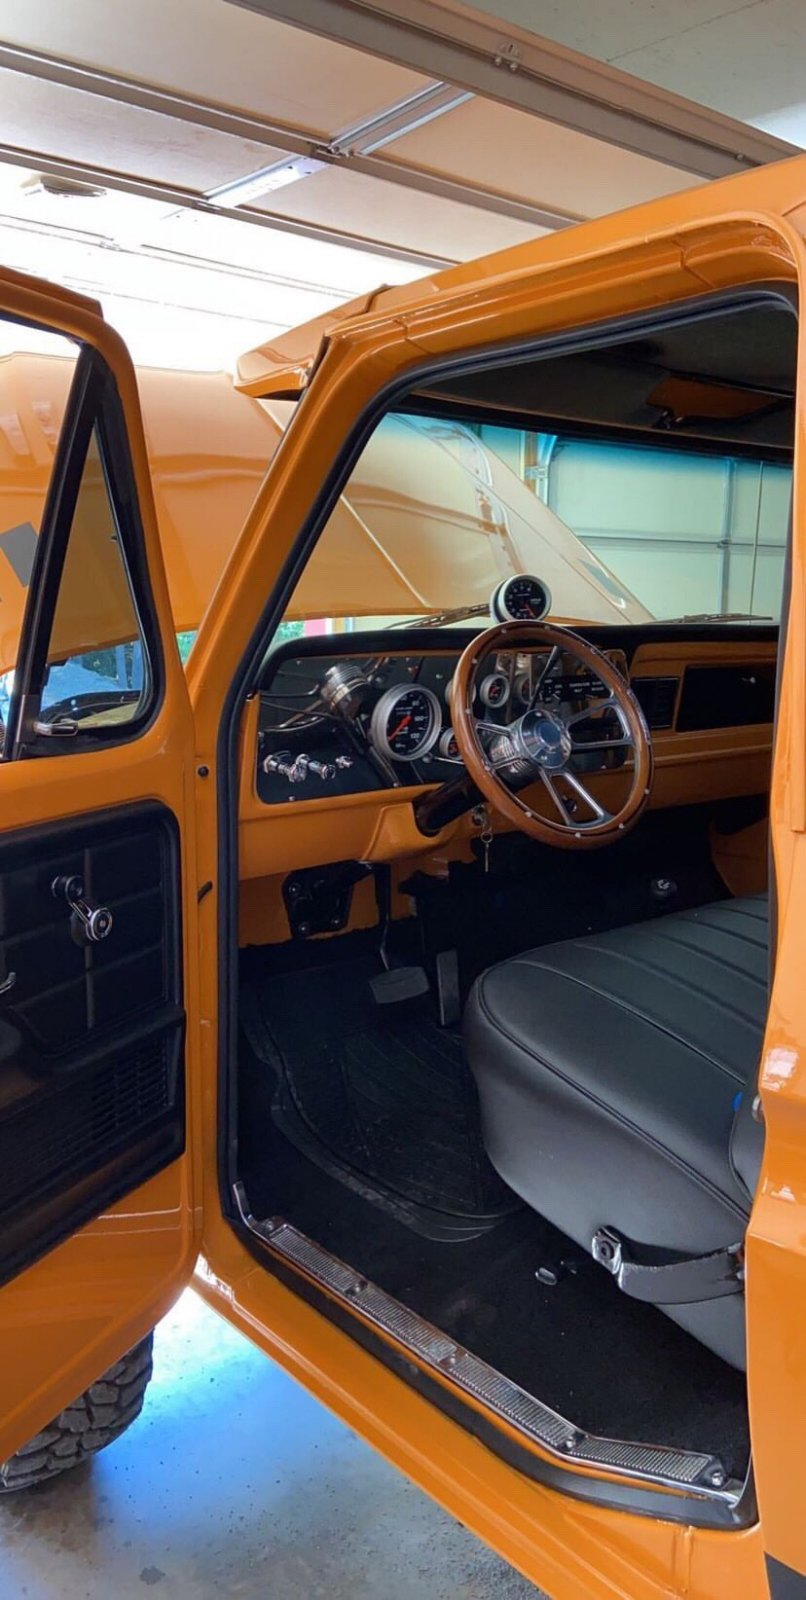 1977-ford-f150-story-about-truck-owner-caleb-yoder-5-jpg.6988